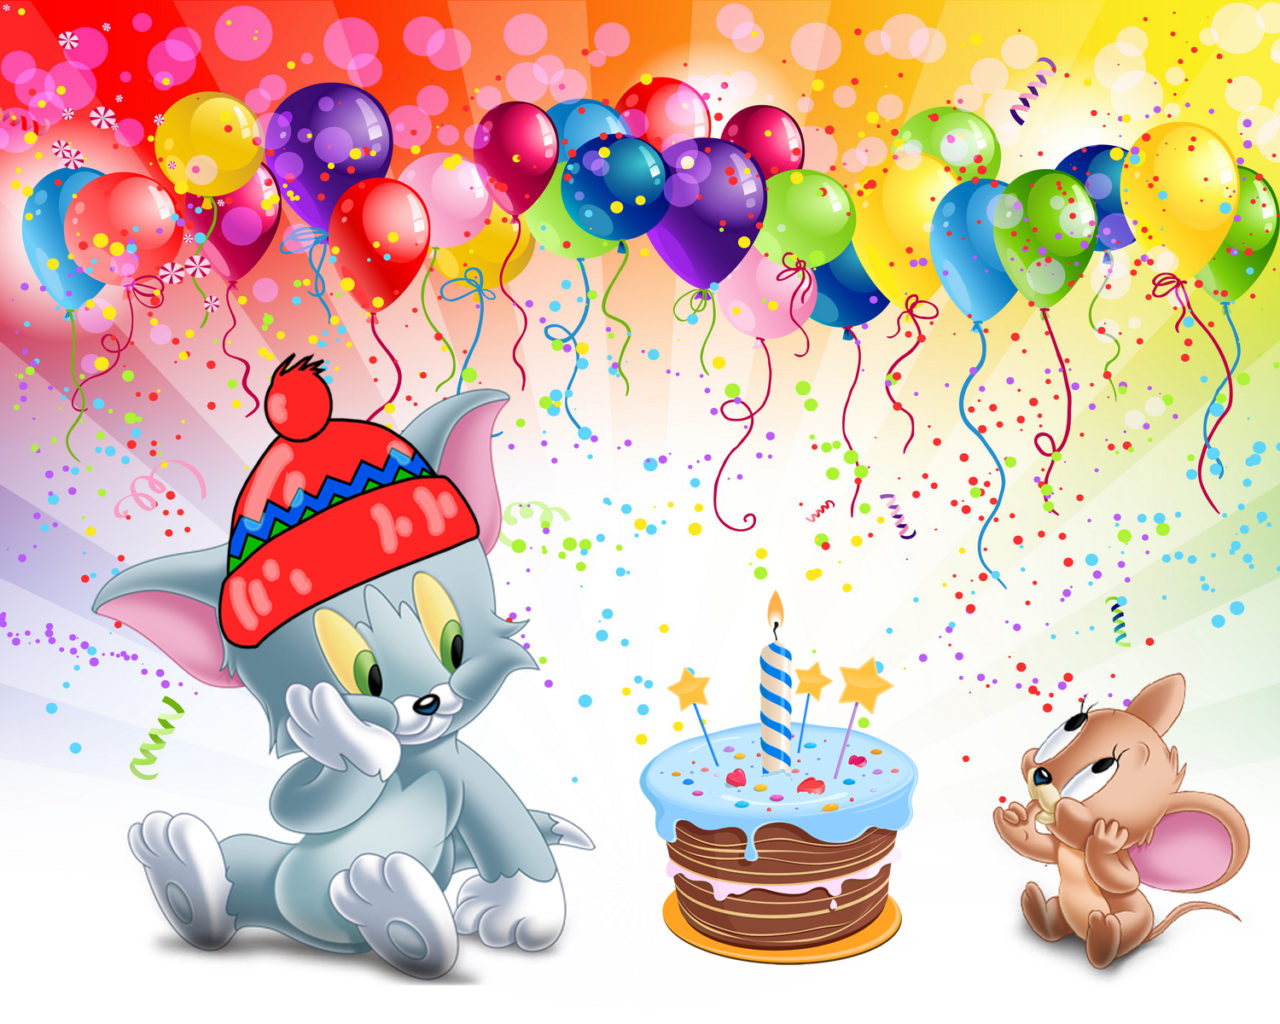 Cute Cat Wallpapers High Resolution Tom And Jerry First Birthday Cake Desktop Hd Wallpaper For